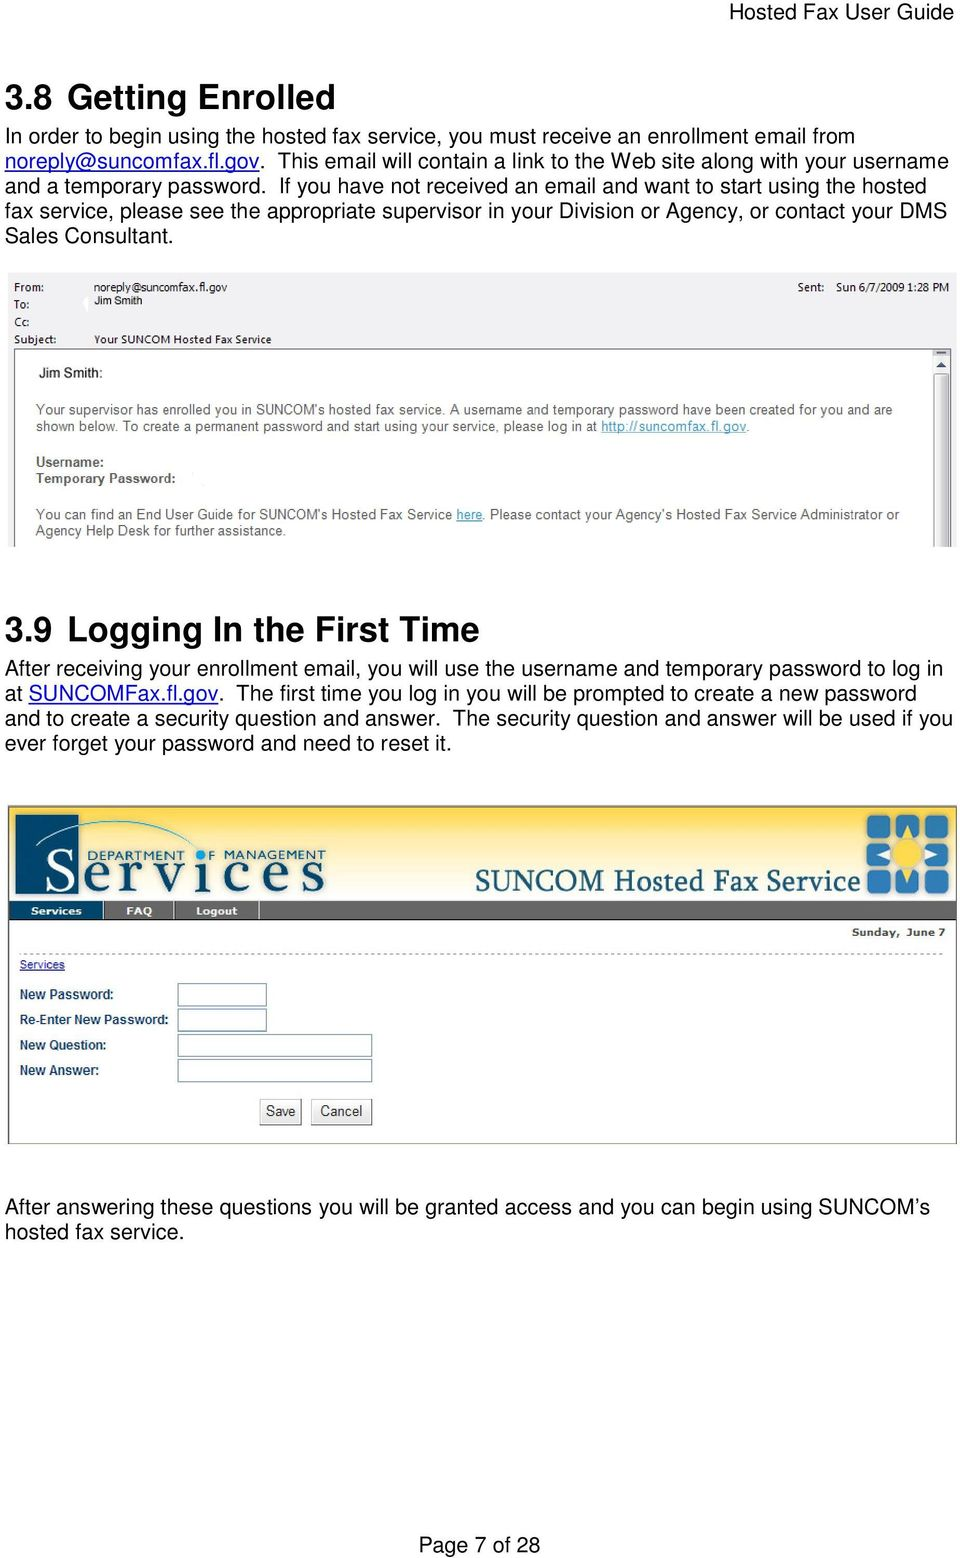 If you have not received an email and want to start using the hosted fax service, please see the appropriate supervisor in your Division or Agency, or contact your DMS Sales Consultant. 3.